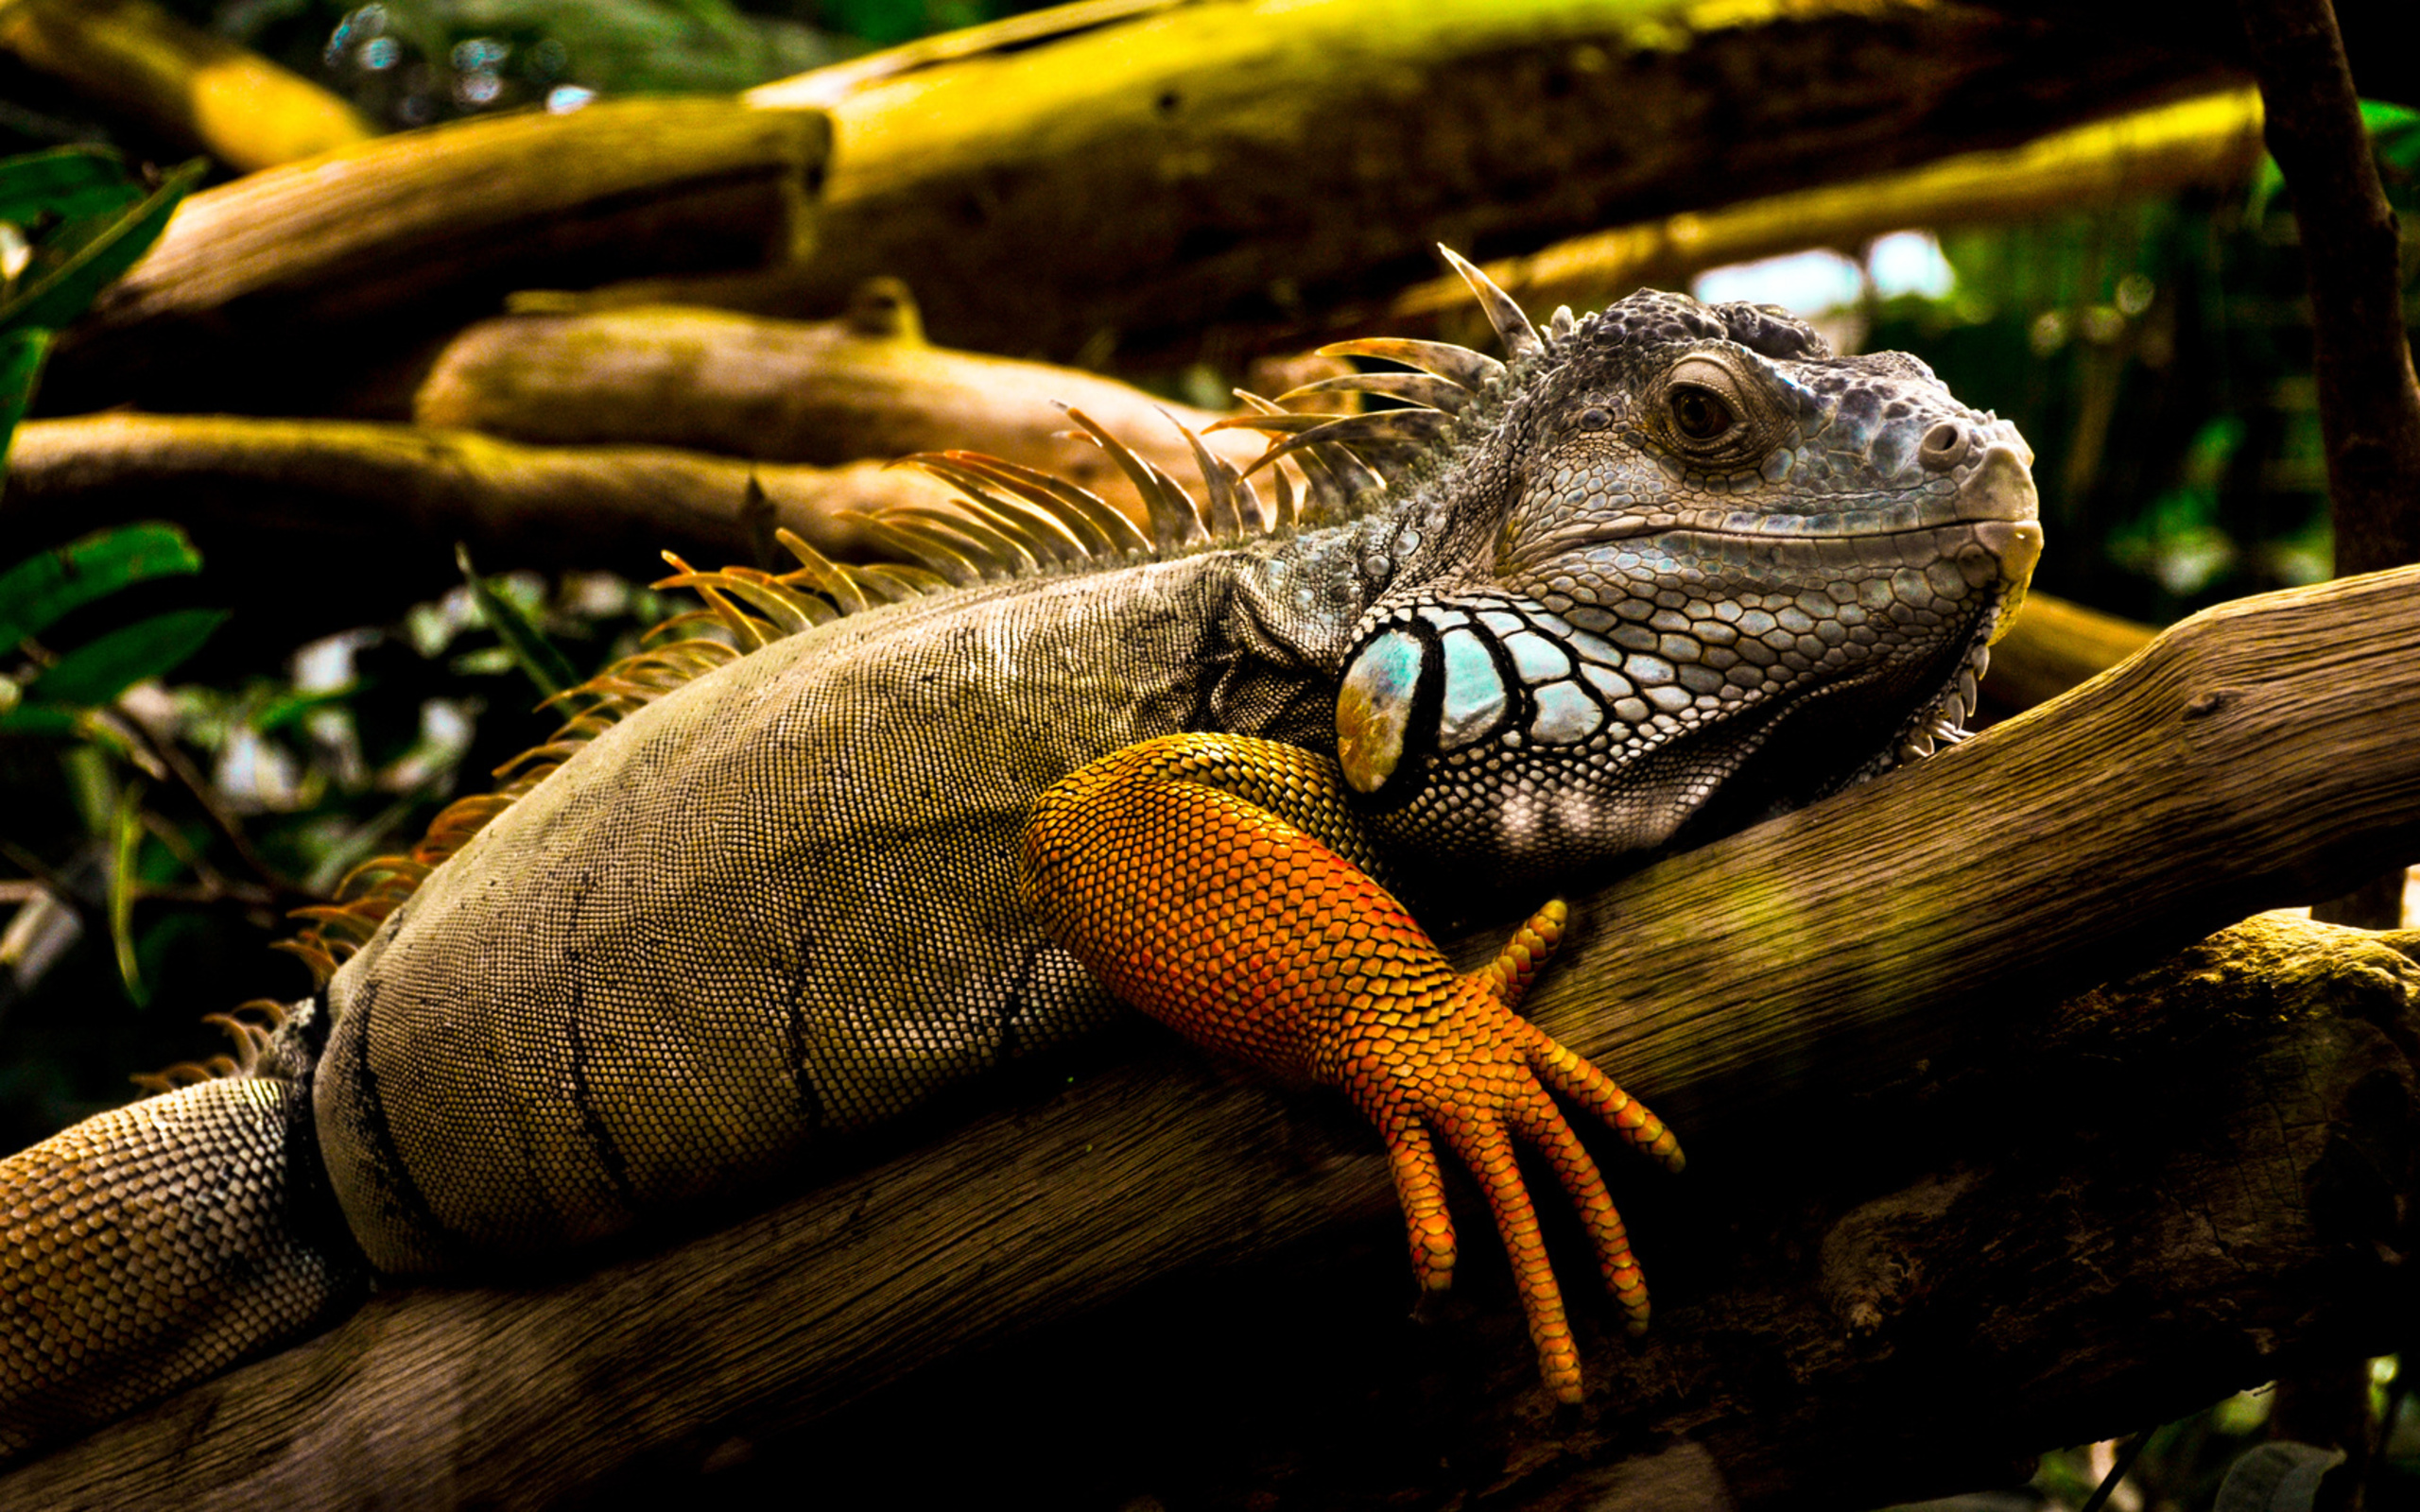 Iguana Hd Wallpapers Images High Definition